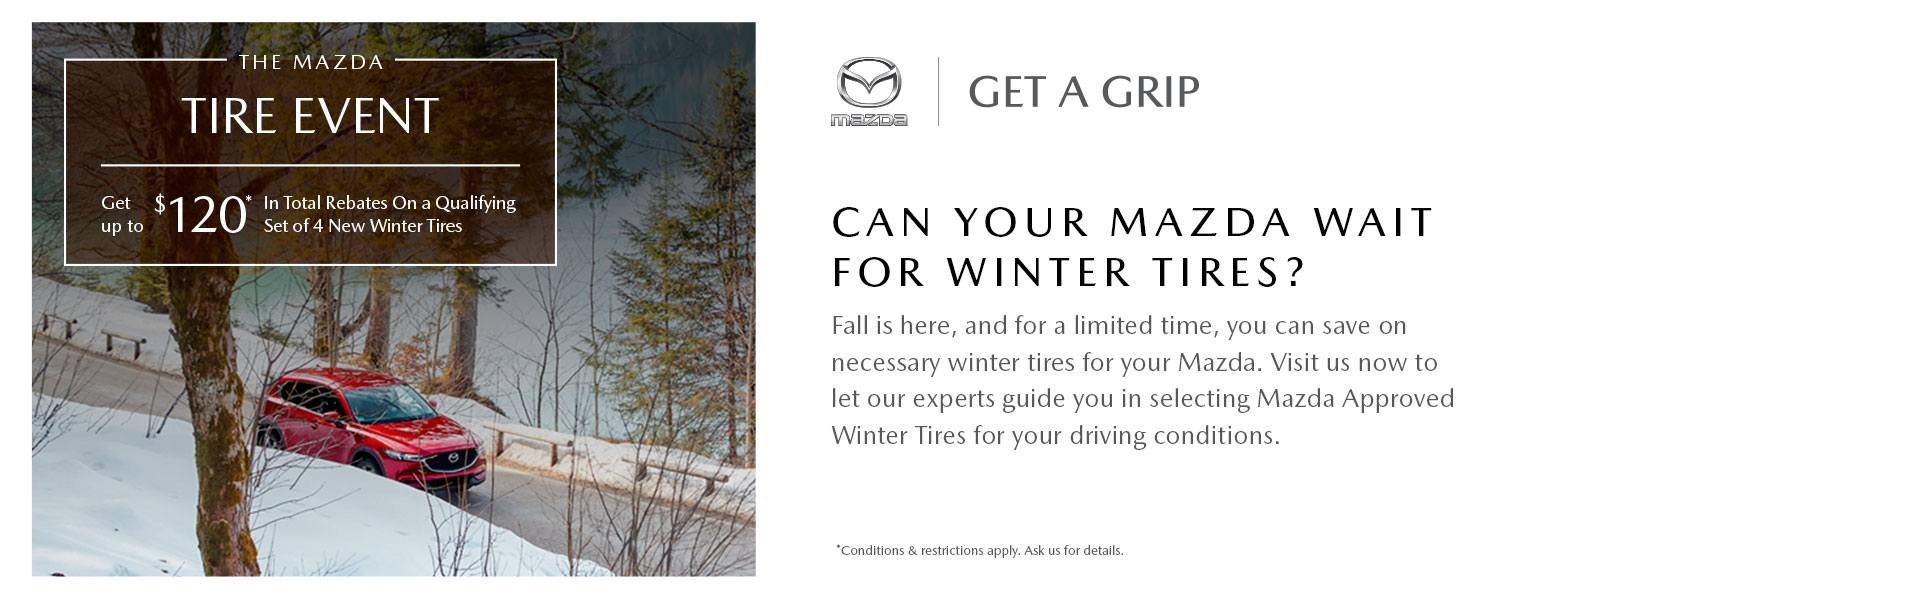 The Mazda Tire Event - Get a Grip